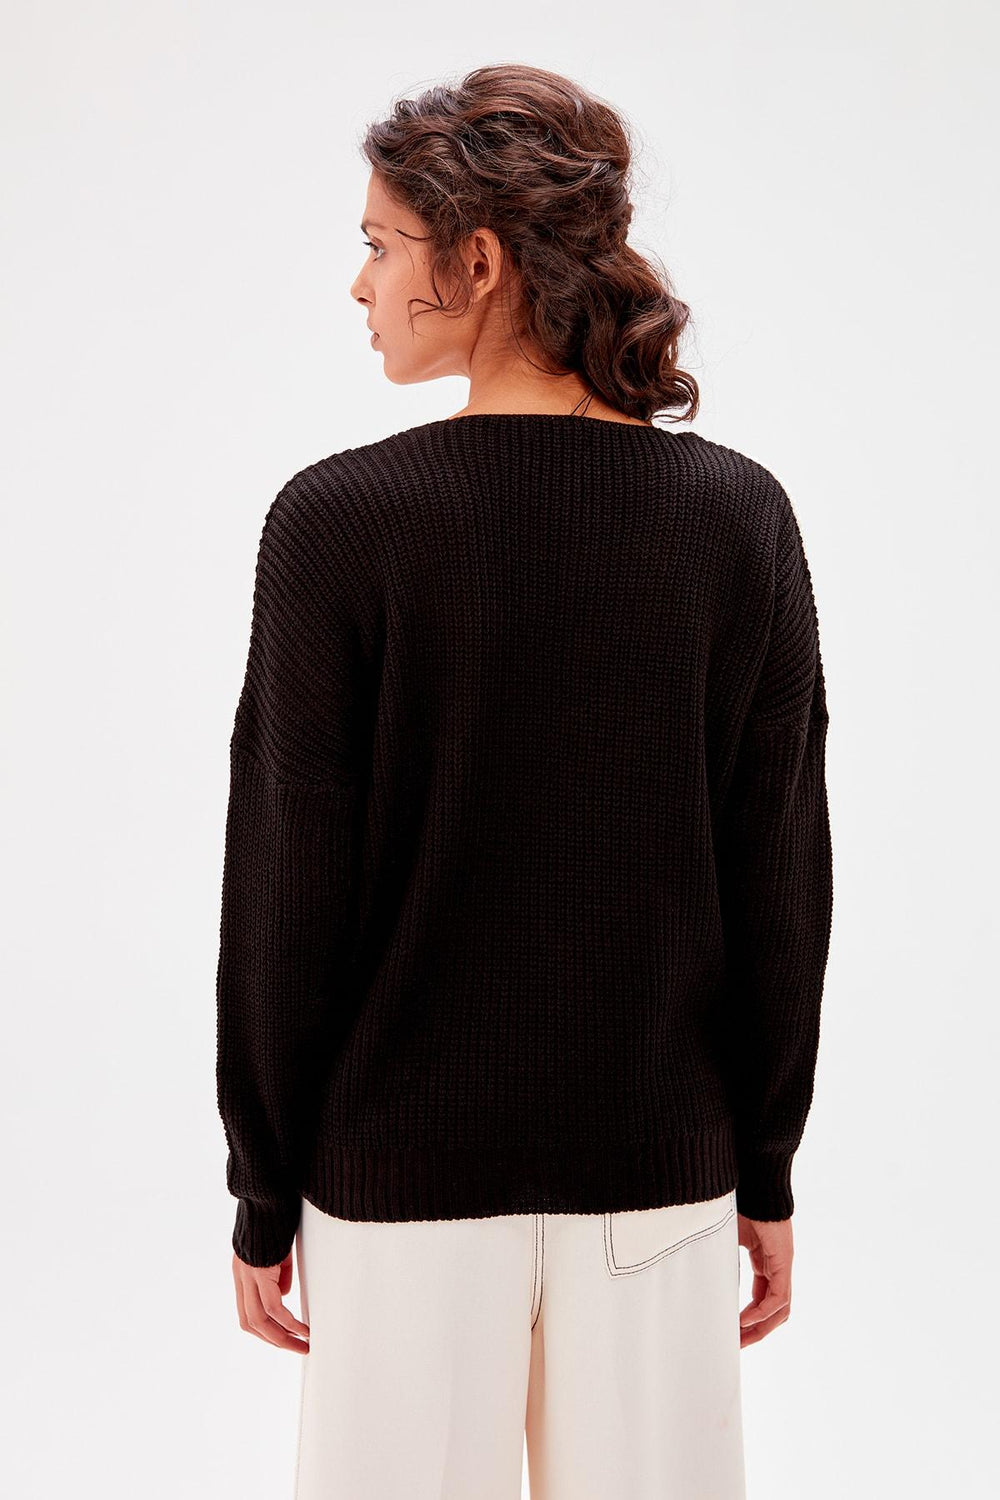 Black With Color Block Sweater - Top Maxy